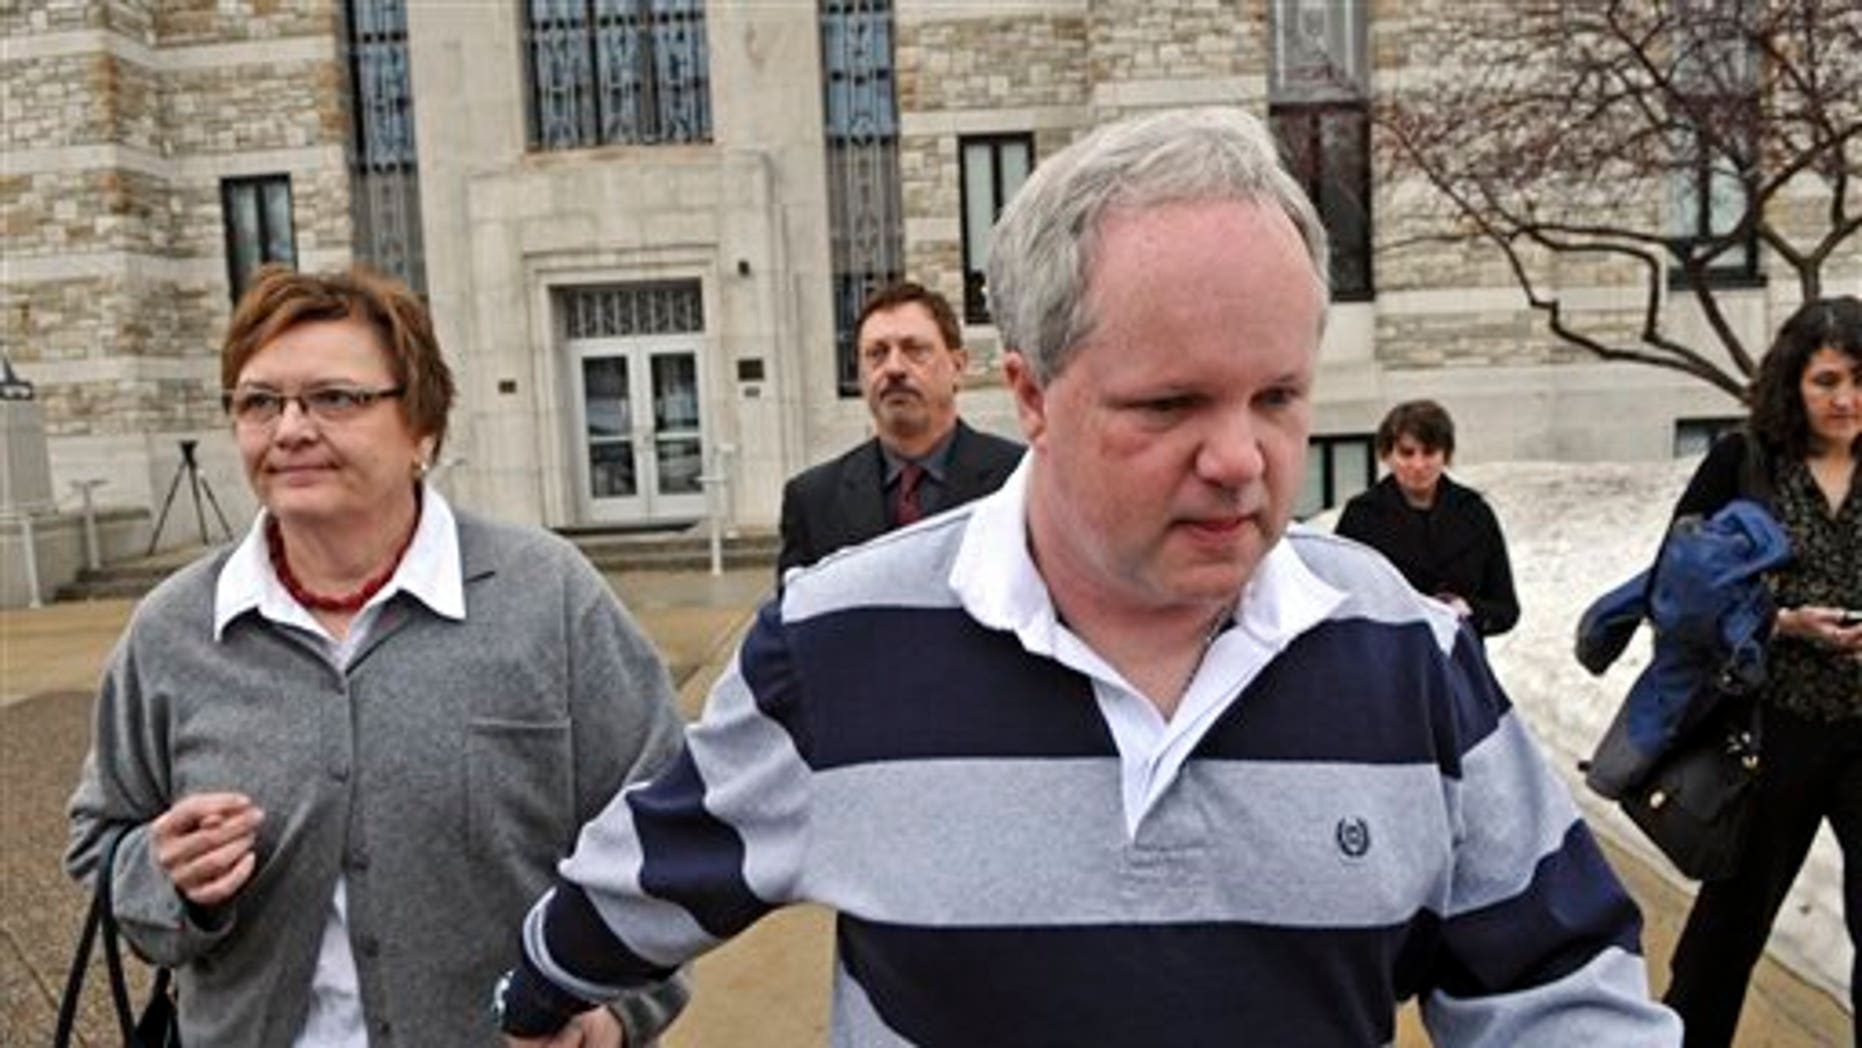 Feb. 17: William Melchert-Dinkel leaves the Rice County Courthouse holding hands with his wife, Joyce Melchert-Dinkel, after waiving his right to a jury trial in Faribault, Minn. (AP/Star Tribune)